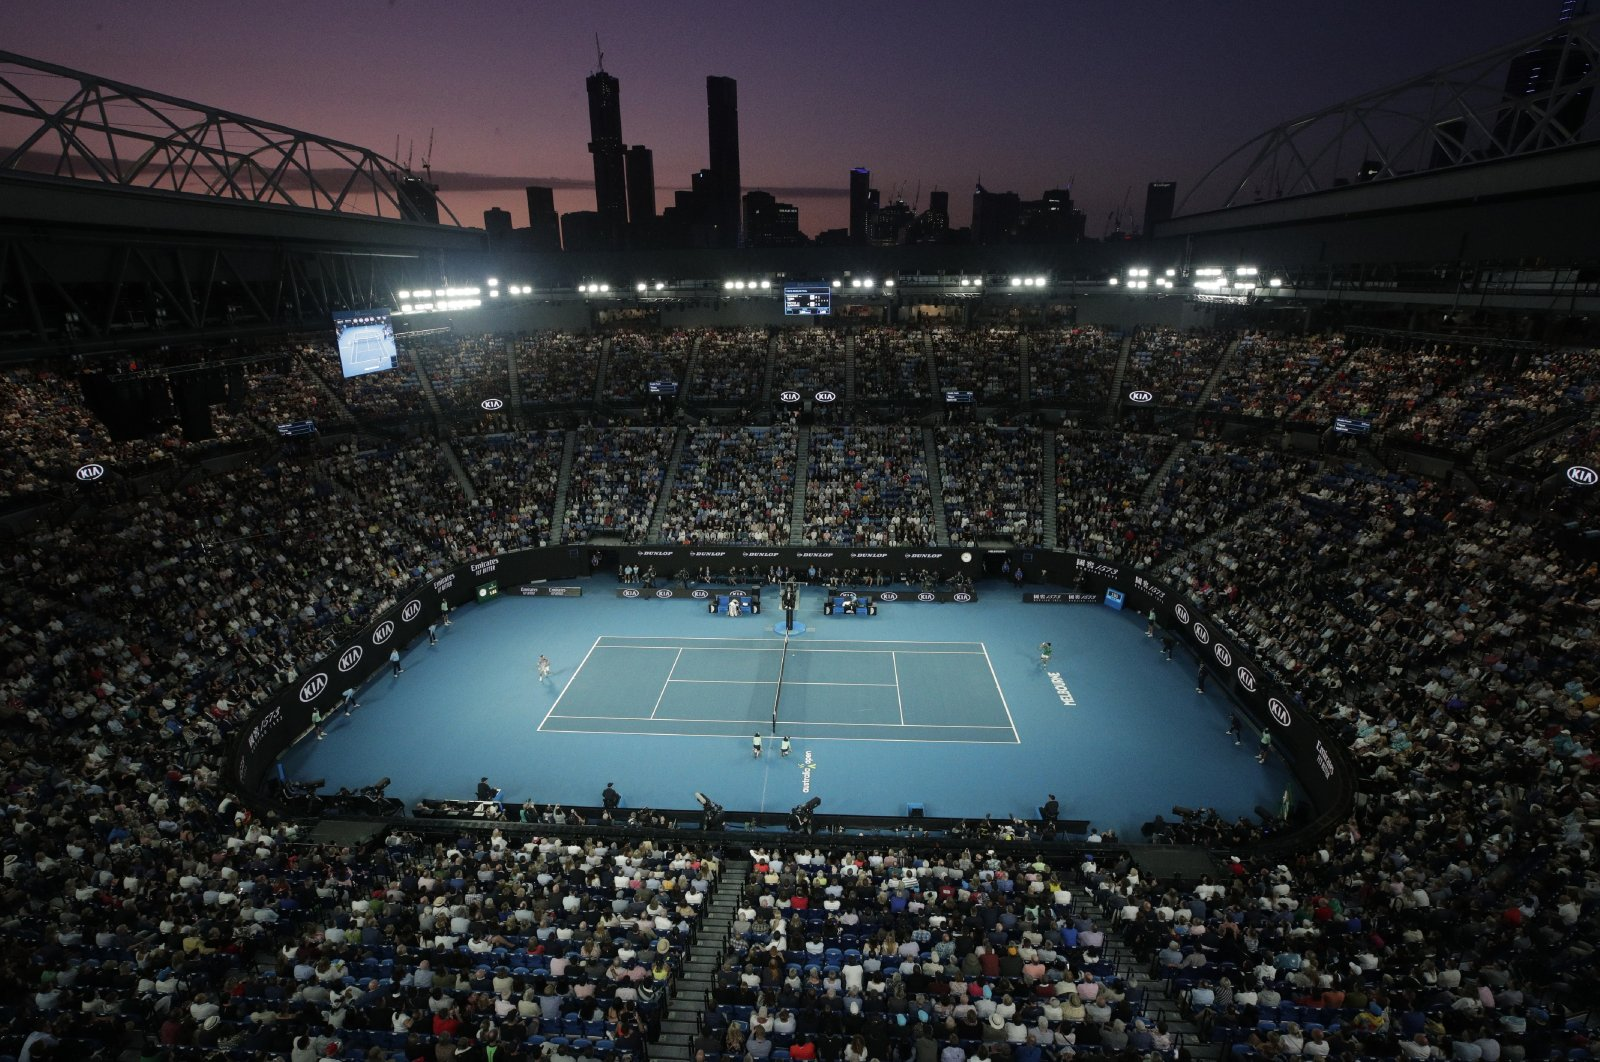 A view of Rod Laver Arena during the men's singles final at Australian Open, in Melbourne, Australia, Feb. 2, 2020. (AP Photo)